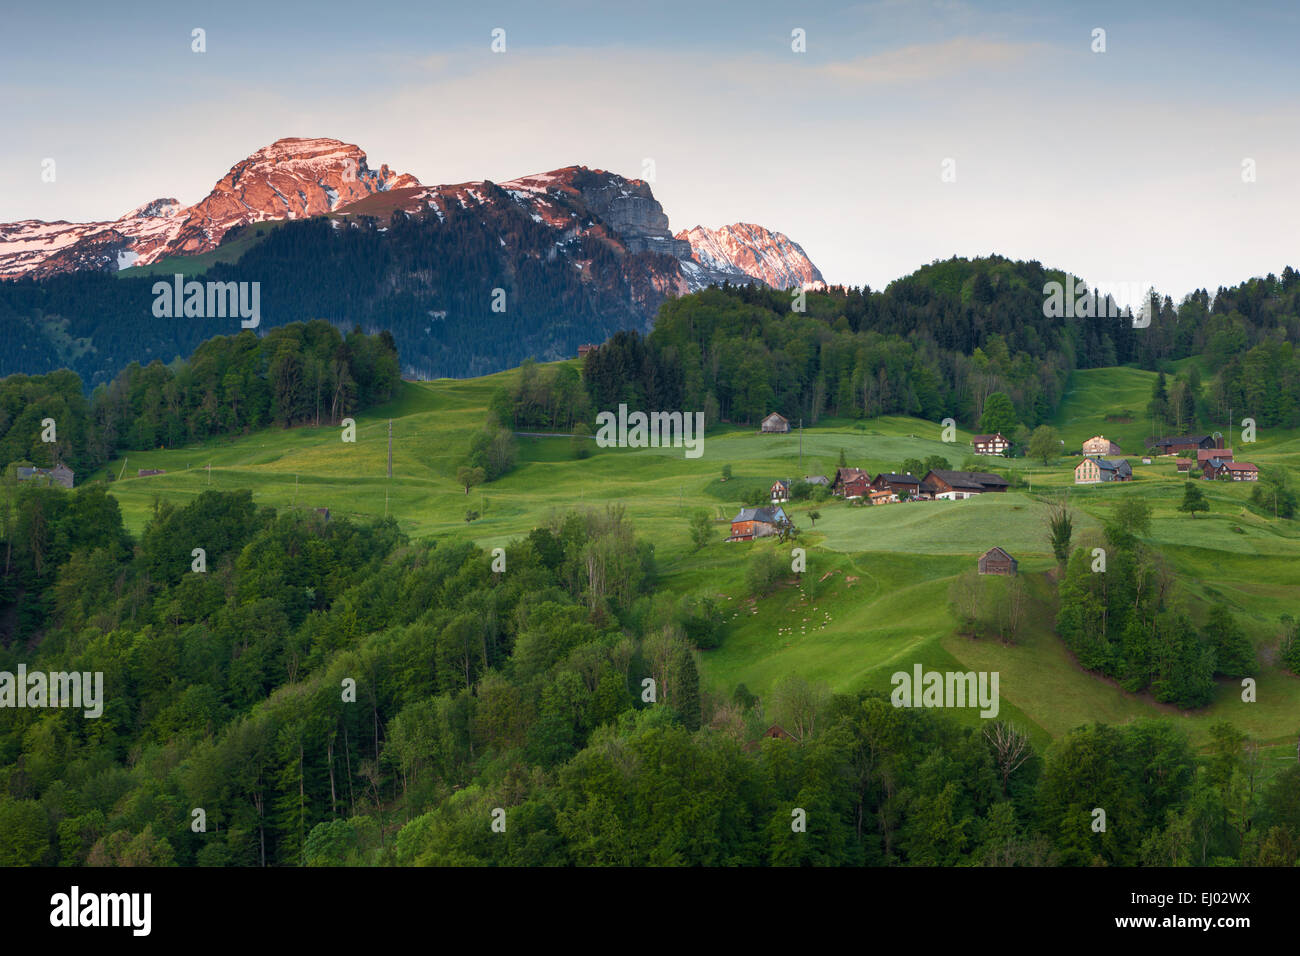 Grabserberg, Grabs mountain, Switzerland, Europe, canton St. Gallen, Rhine Valley, morning light - Stock Image